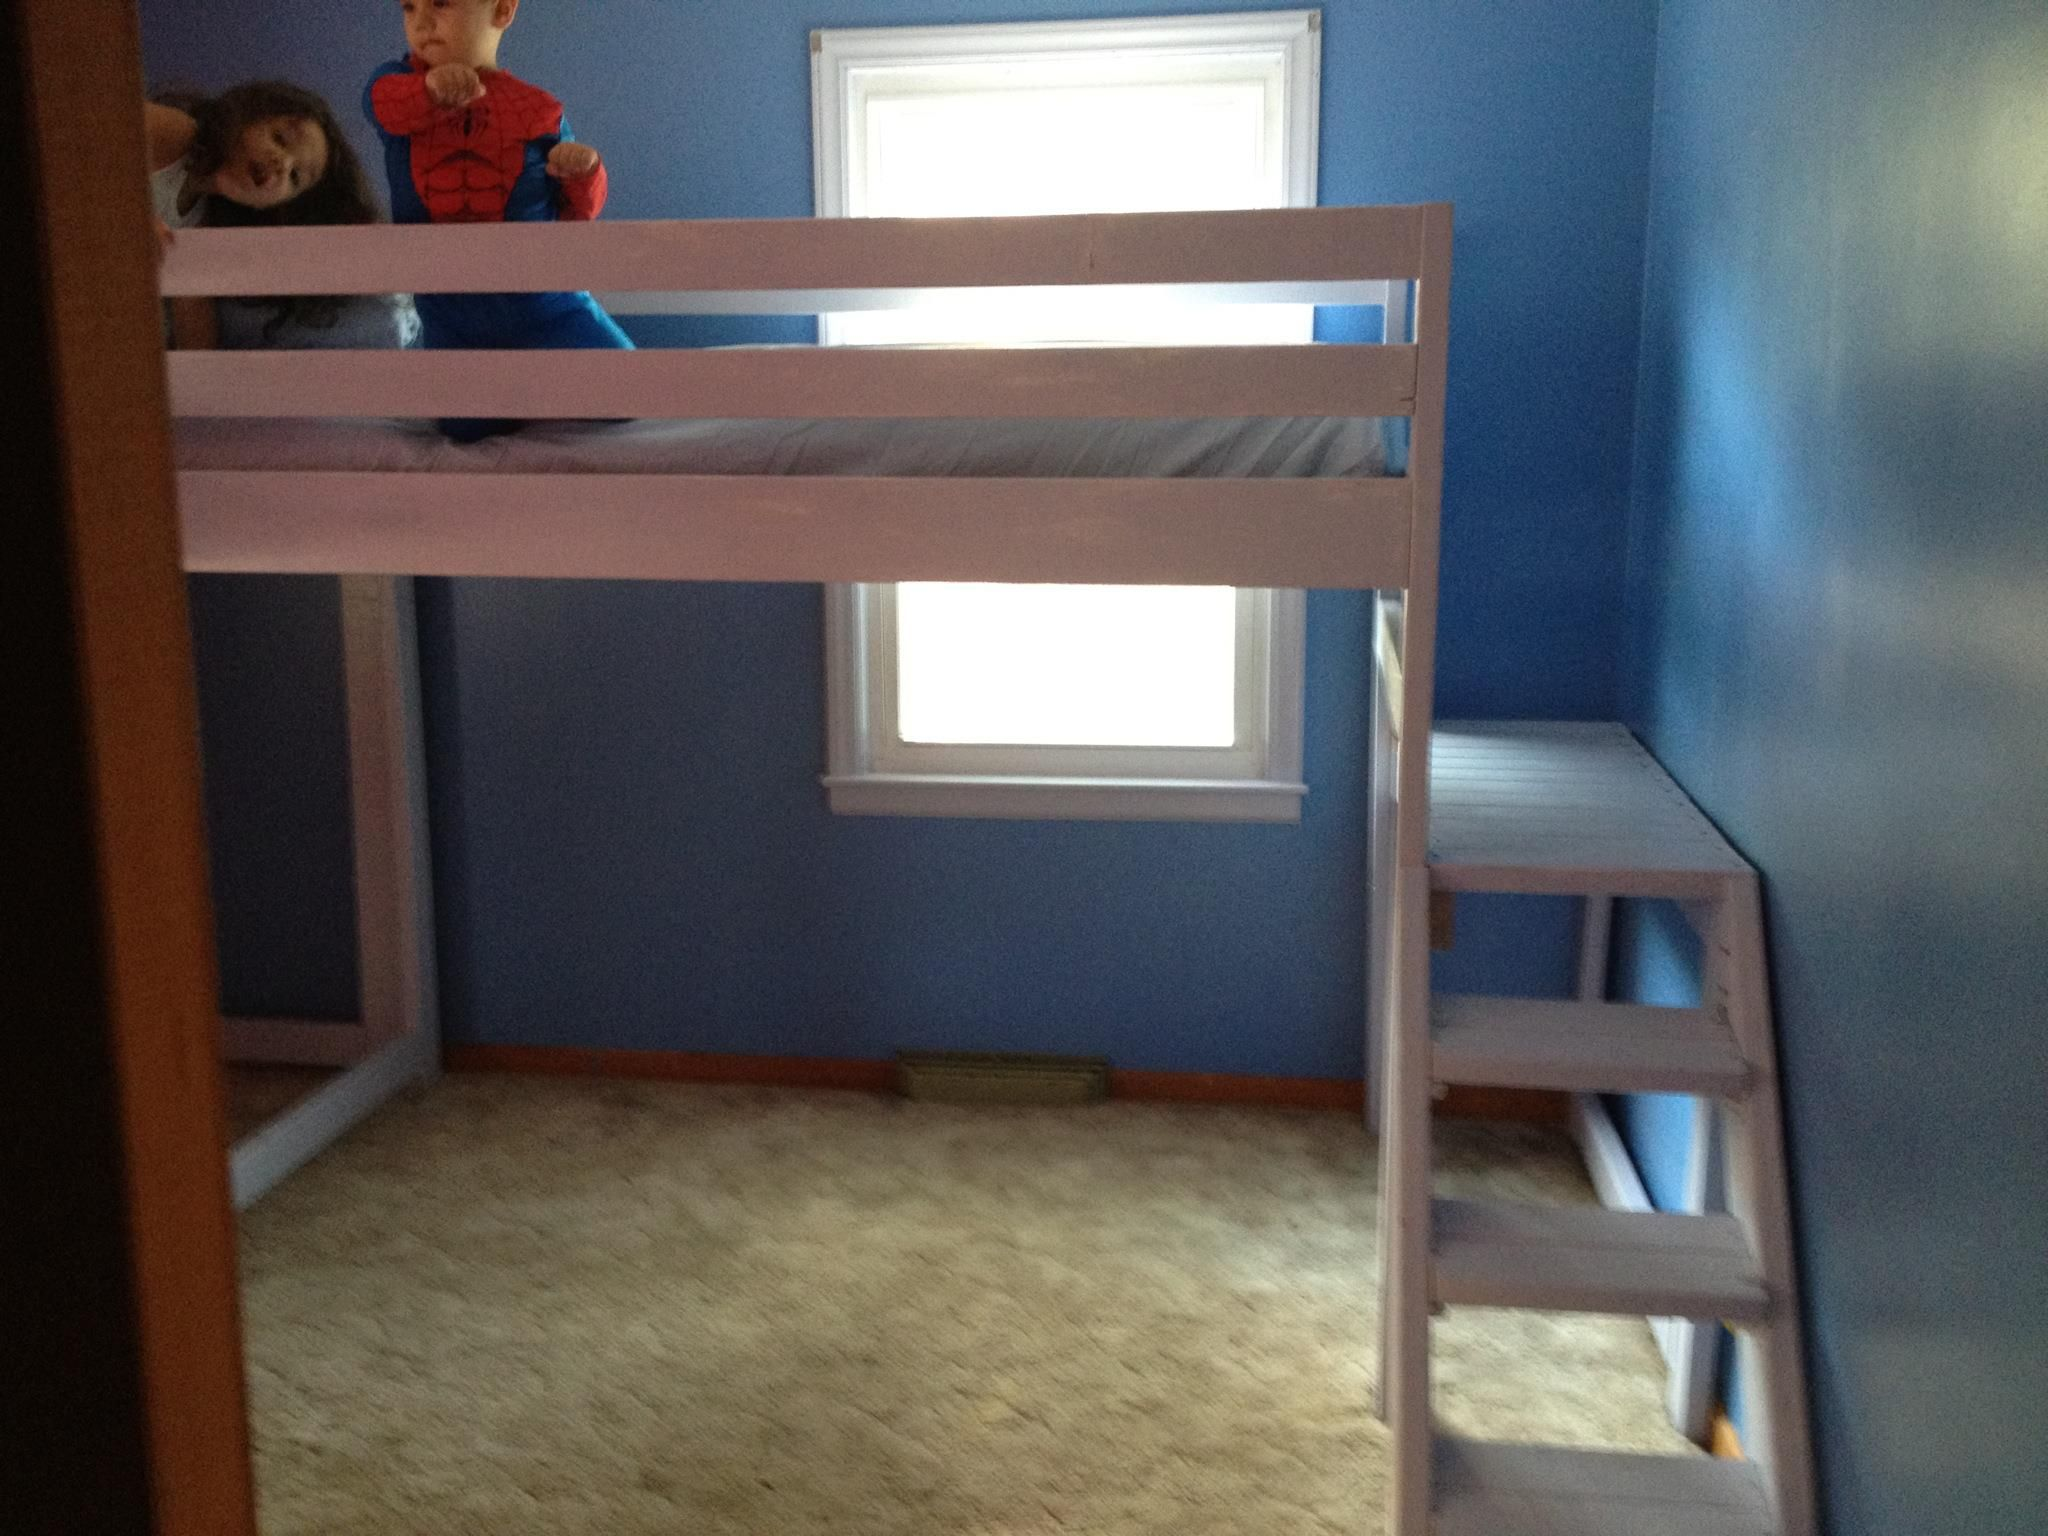 Pinterest Do It Yourself       loft beds with platform   Do It Yourself. Pinterest Do It Yourself       loft beds with platform   Do It